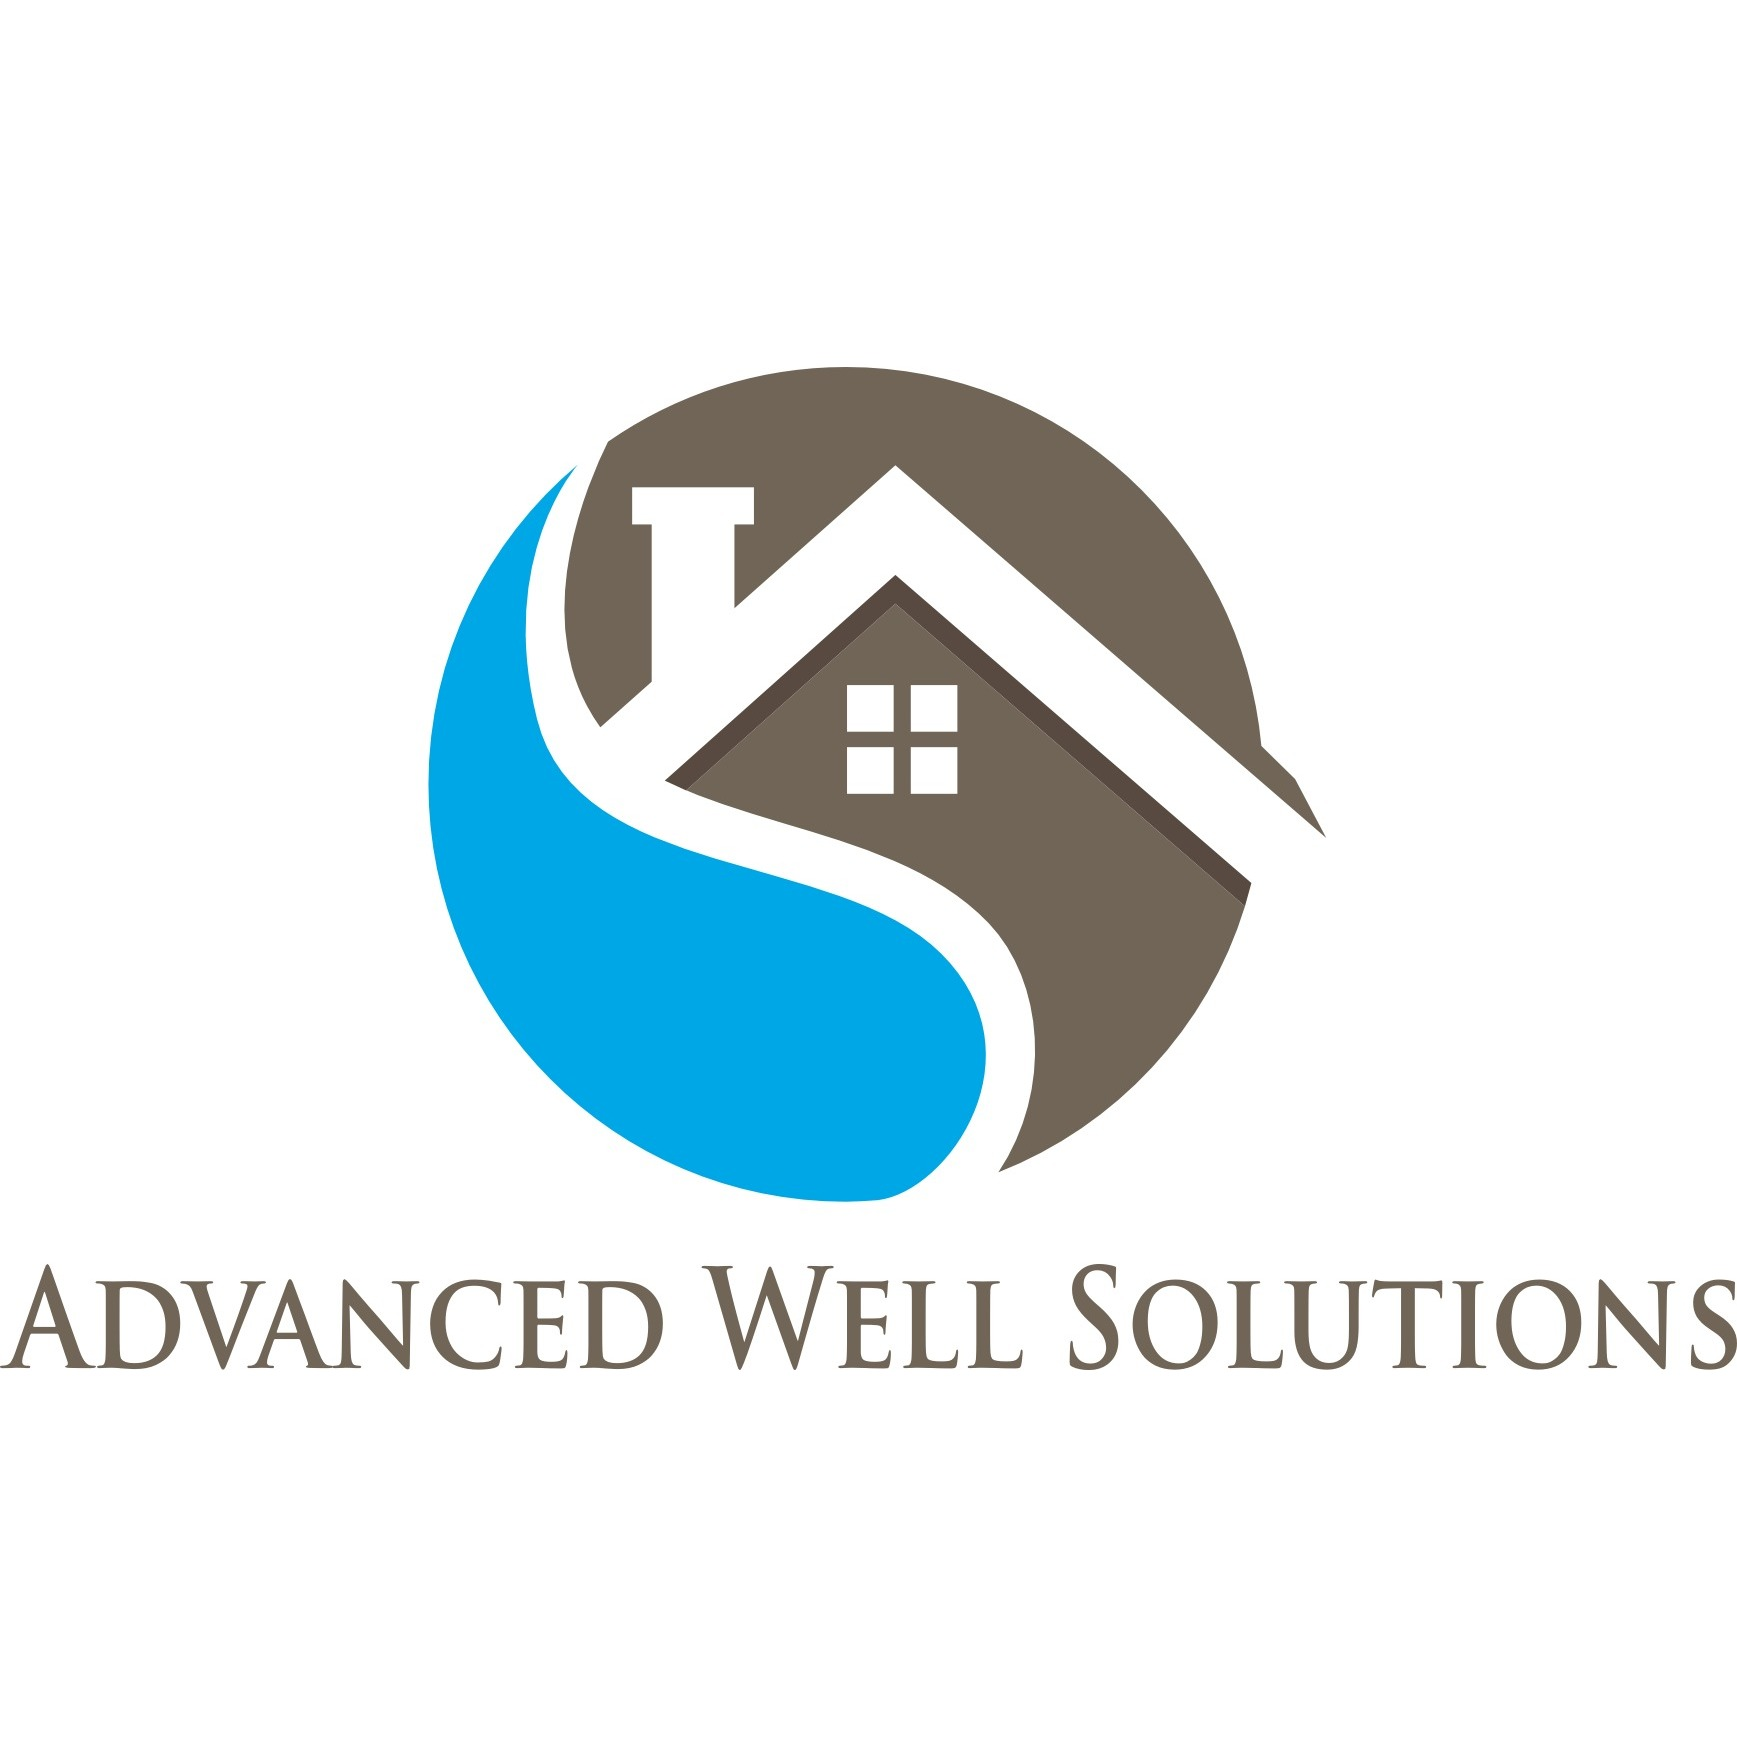 Advanced Well Solutions